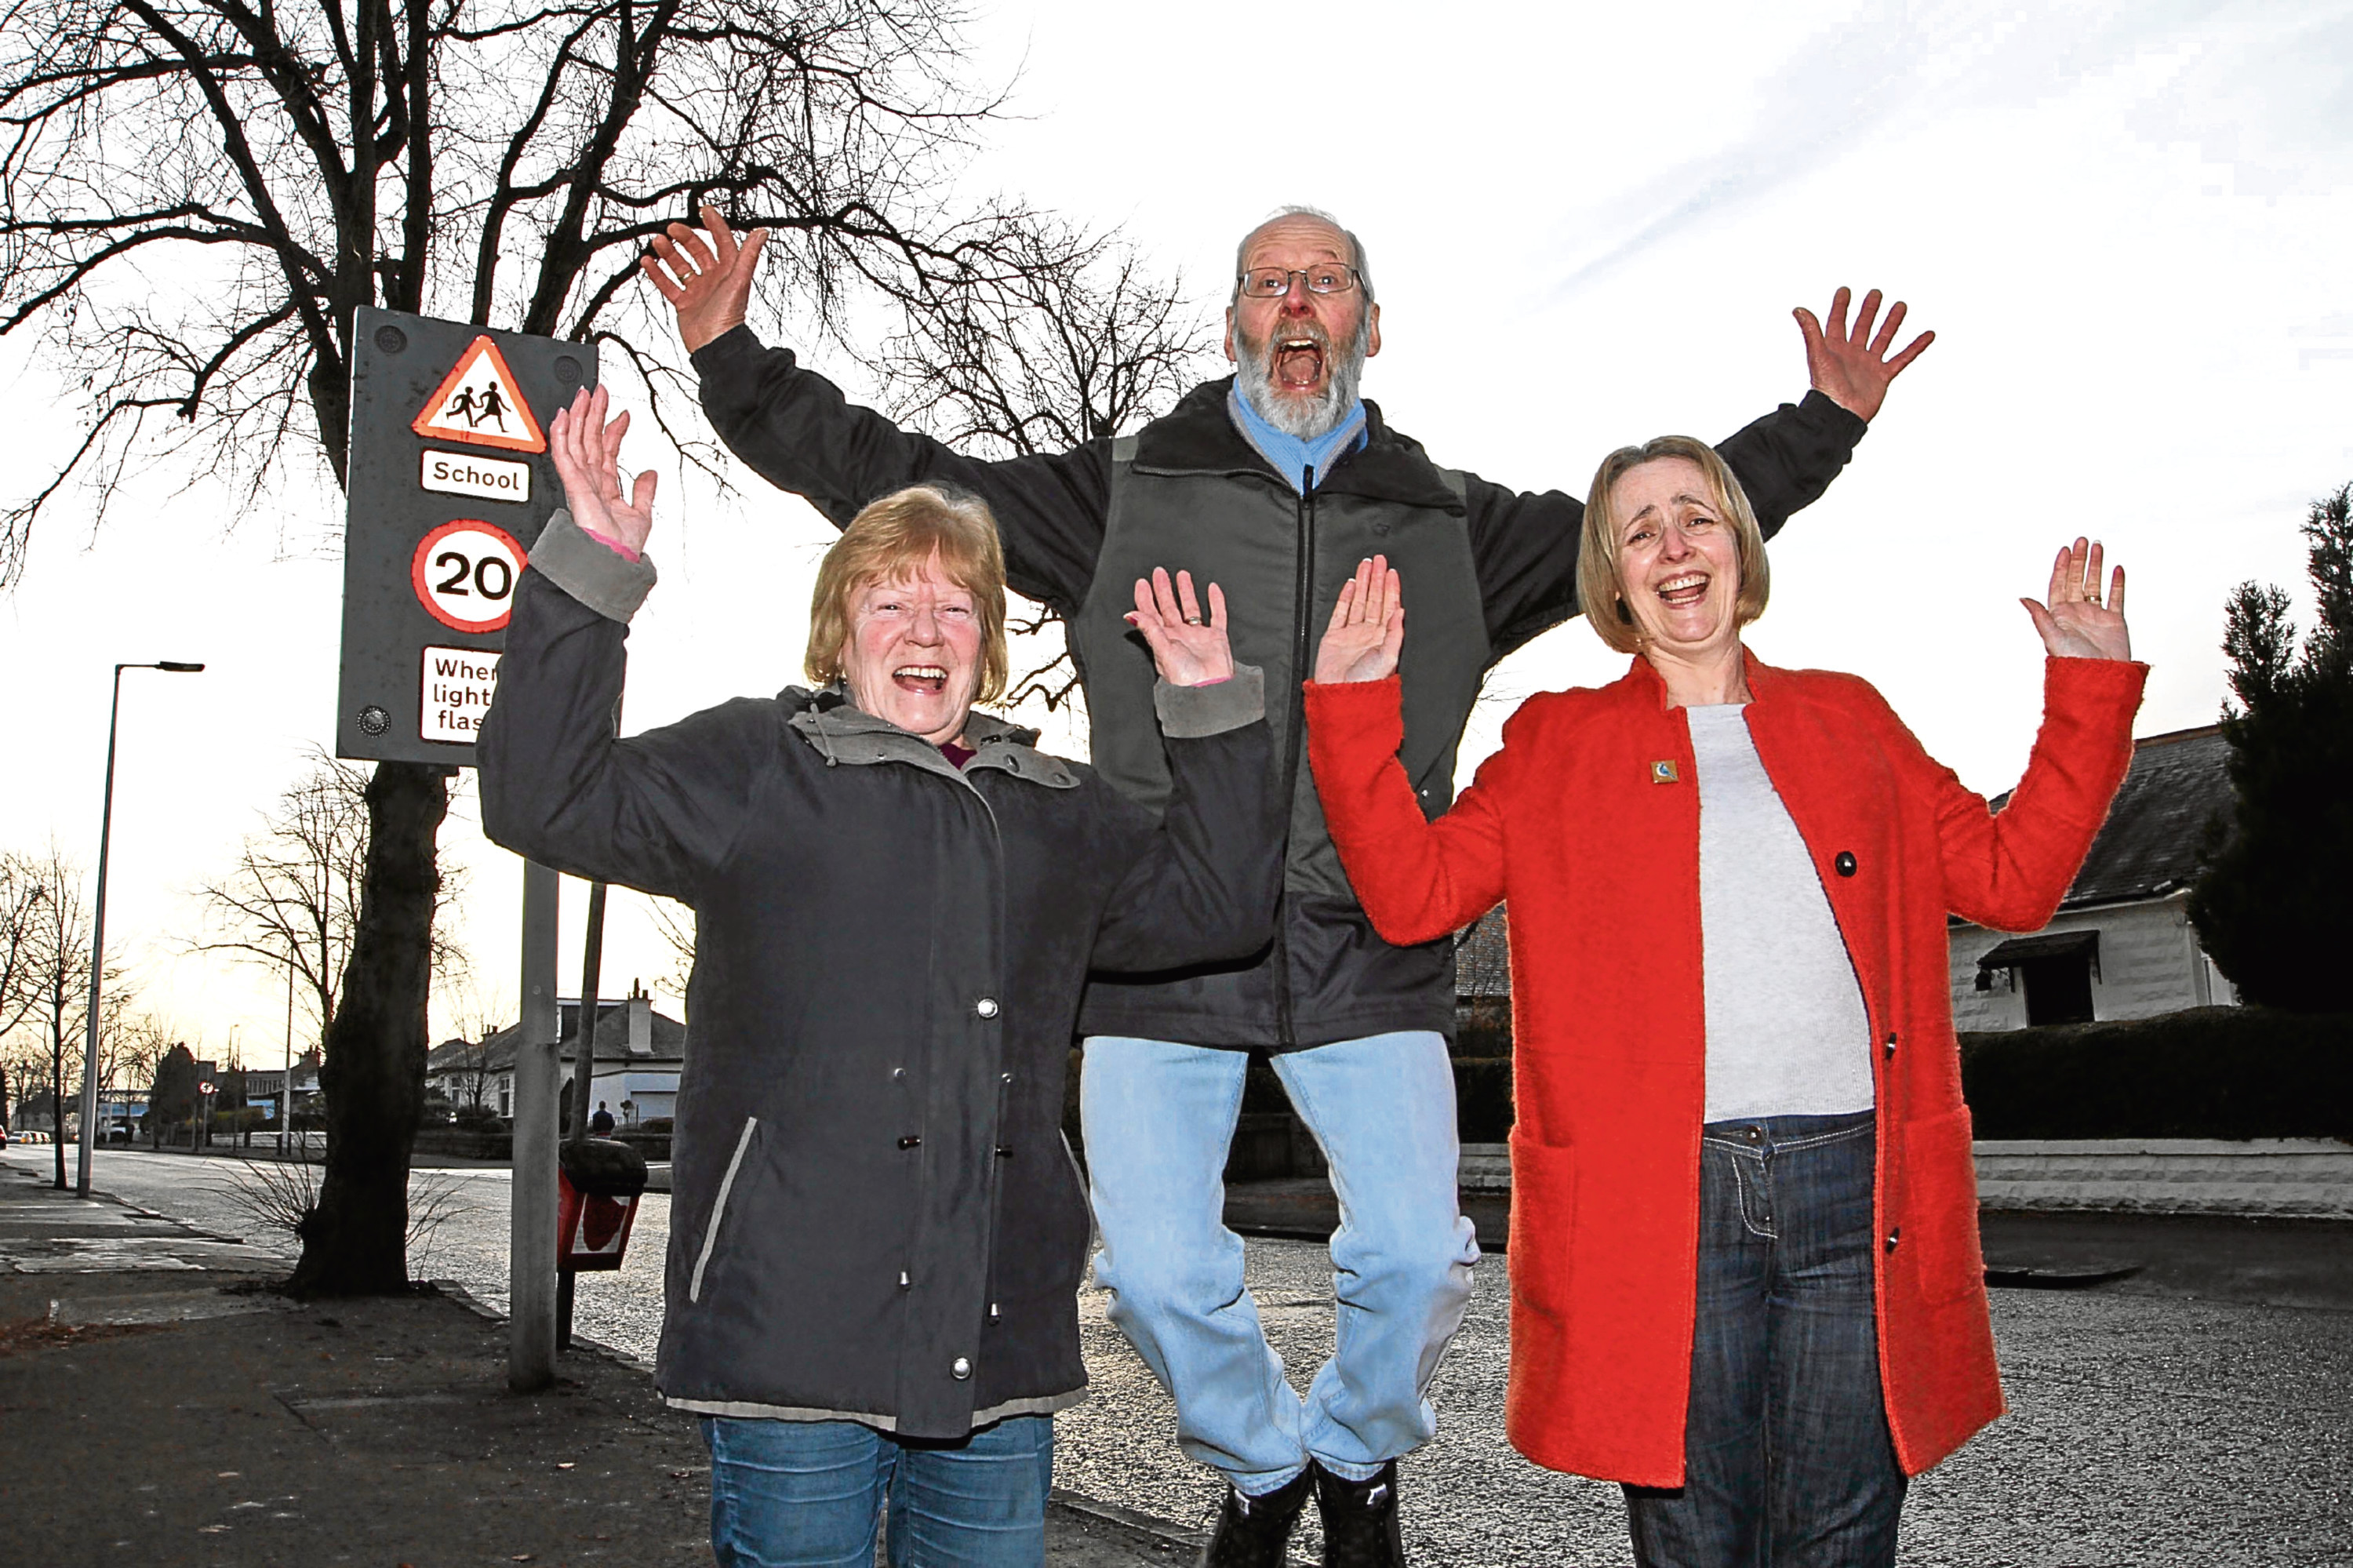 Ann Kelly, Derek Paton and Lesley Connelly have welcomed the news that the council is set to trial a 20mph limit at Johnston Avenue.